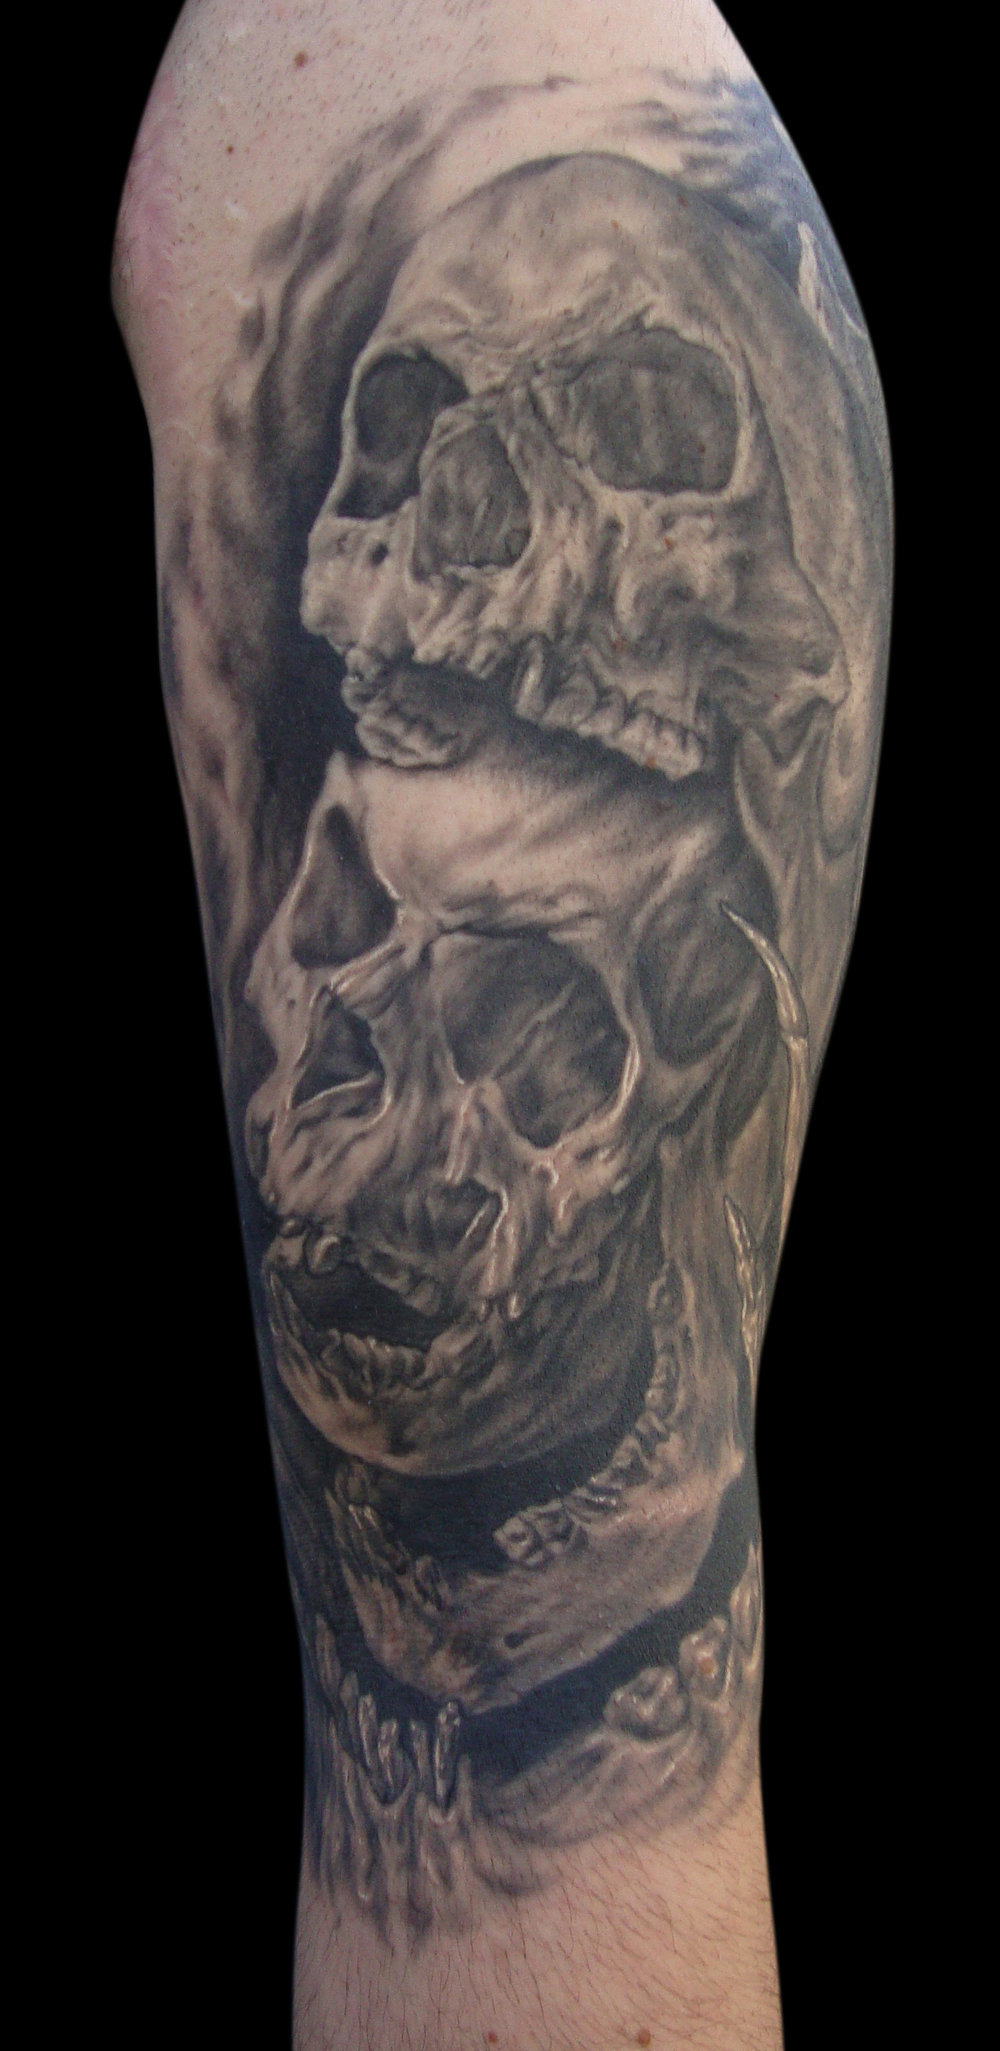 Black and Grey Multi Surreal Skull Overlay Tattoo, (healed) upper arm